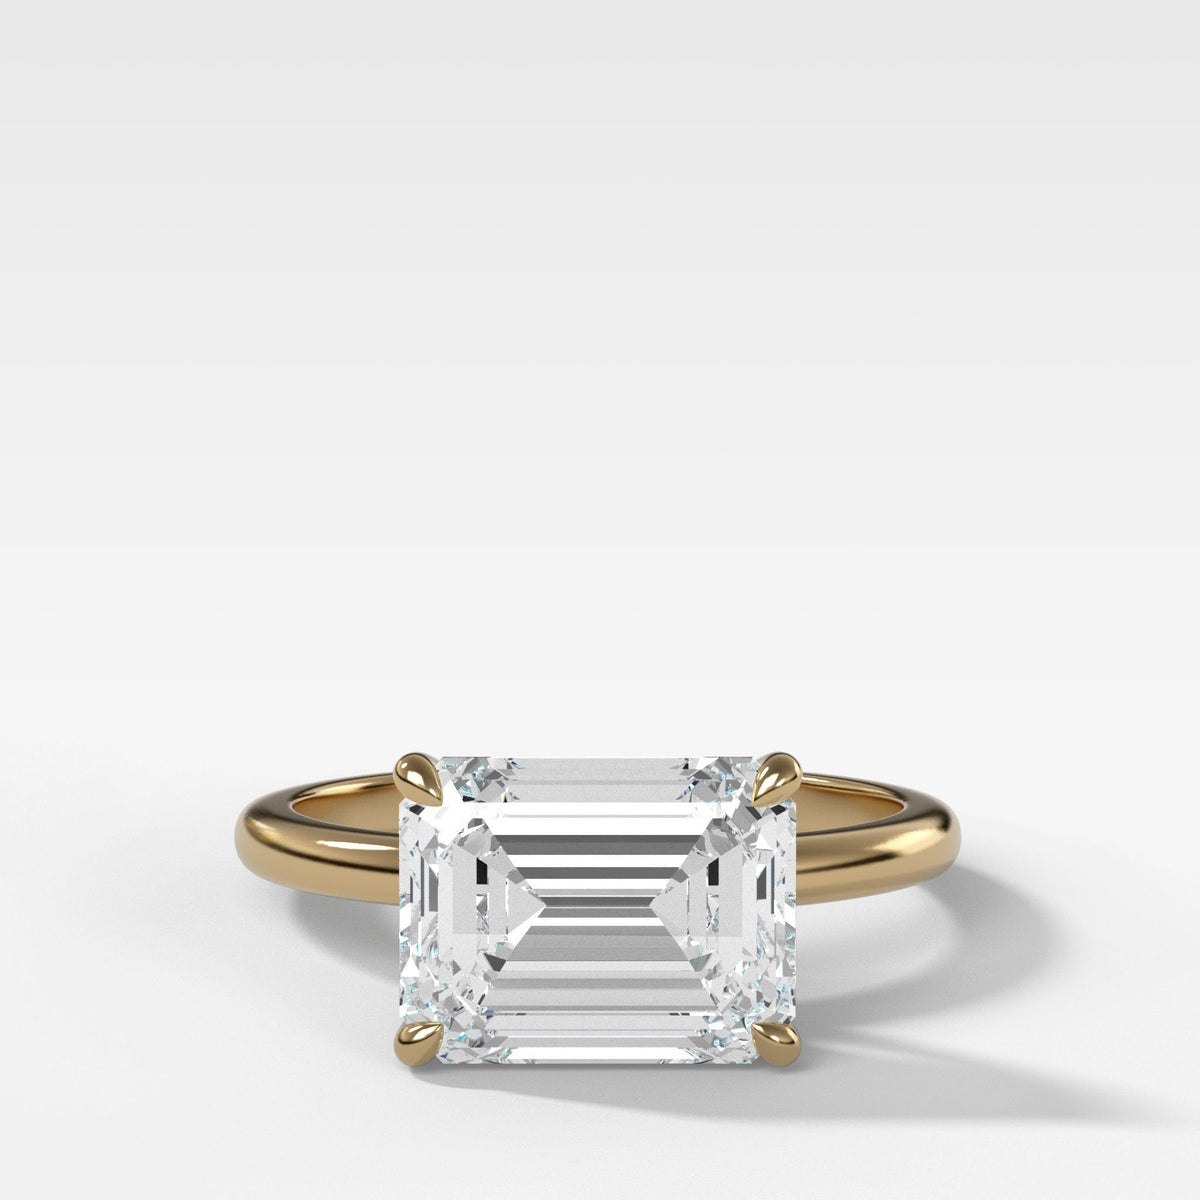 Crescent Solitaire With Emerald Cut (East West) in Yellow Gold By Good Stone